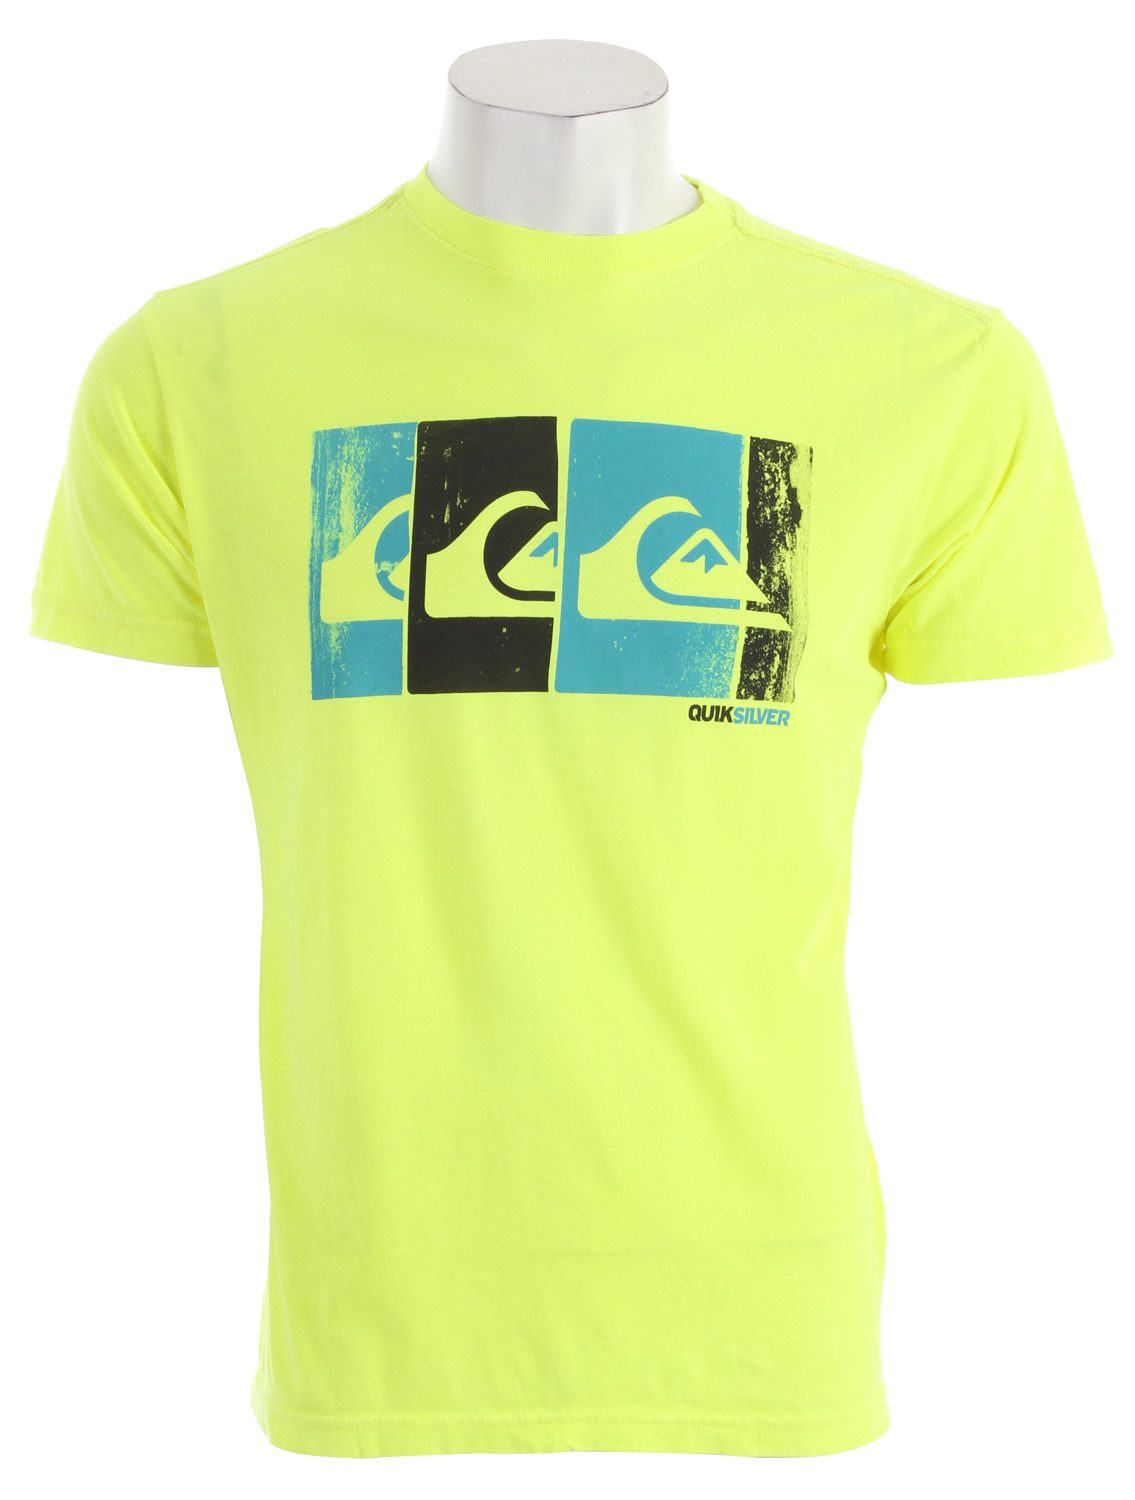 Surf Key Features of the Quiksilver Bold T-Shirt: 30 singles ringspun combed 100% cotton Garment overdyed with enzyme/silicone wash Slim fit - $17.95